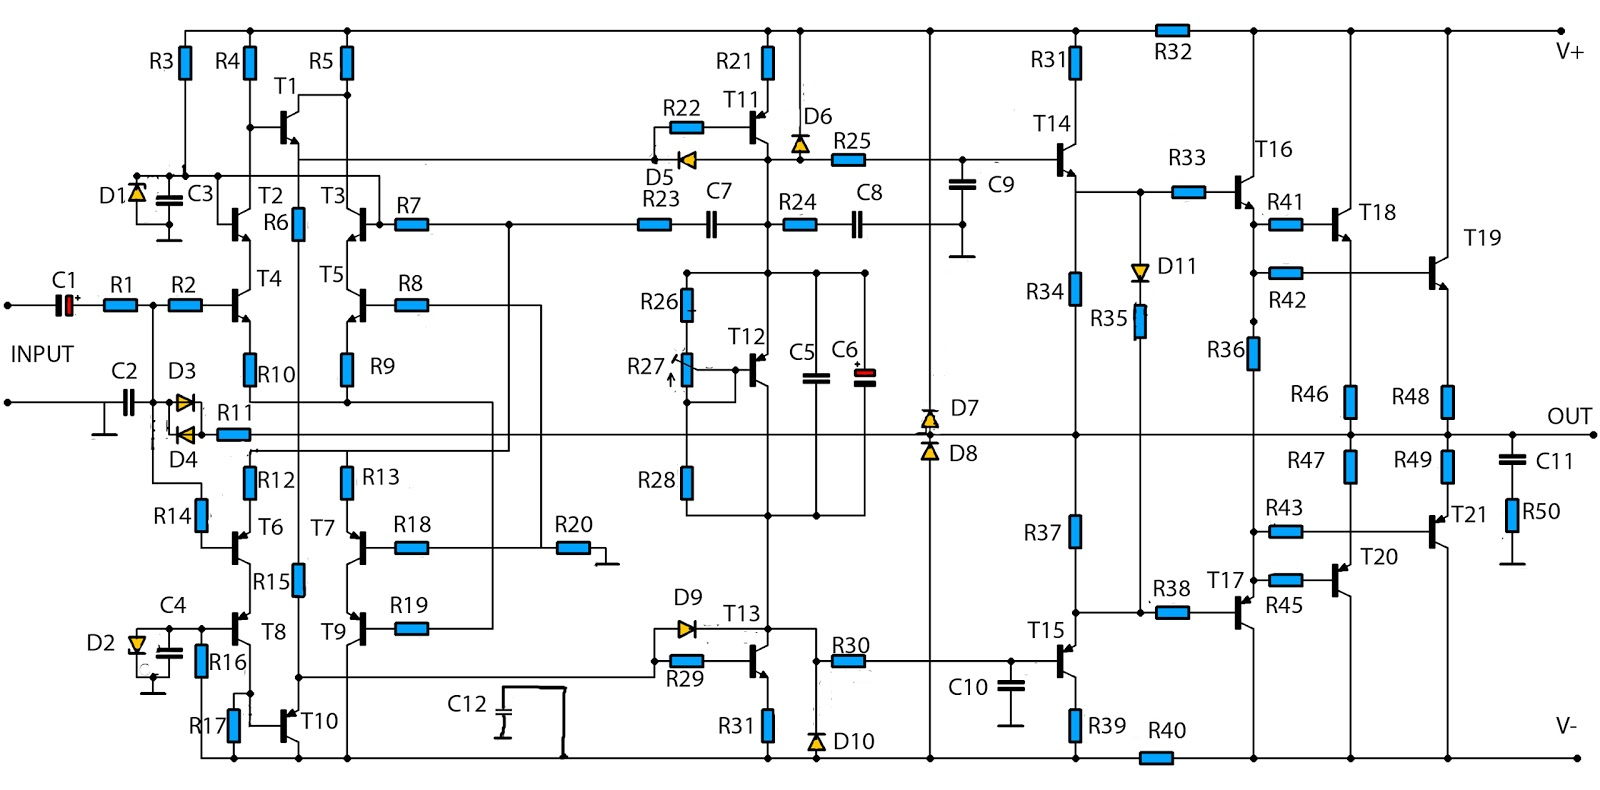 Power Amp Circuit Diagrams Wiring Box New Electronic 2800w High Amplifier Updated Pcb